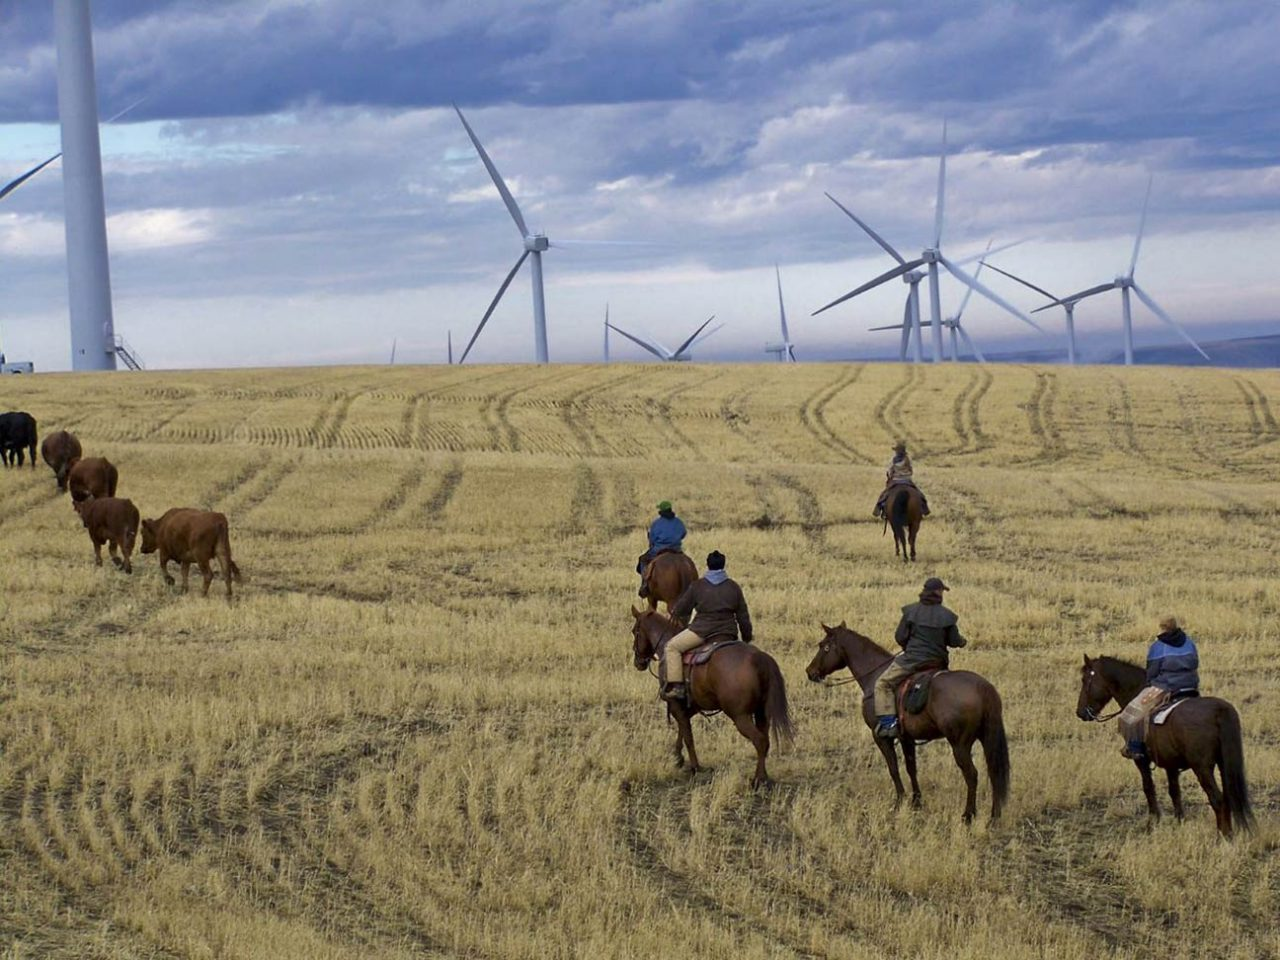 People riding horses with wind turbines